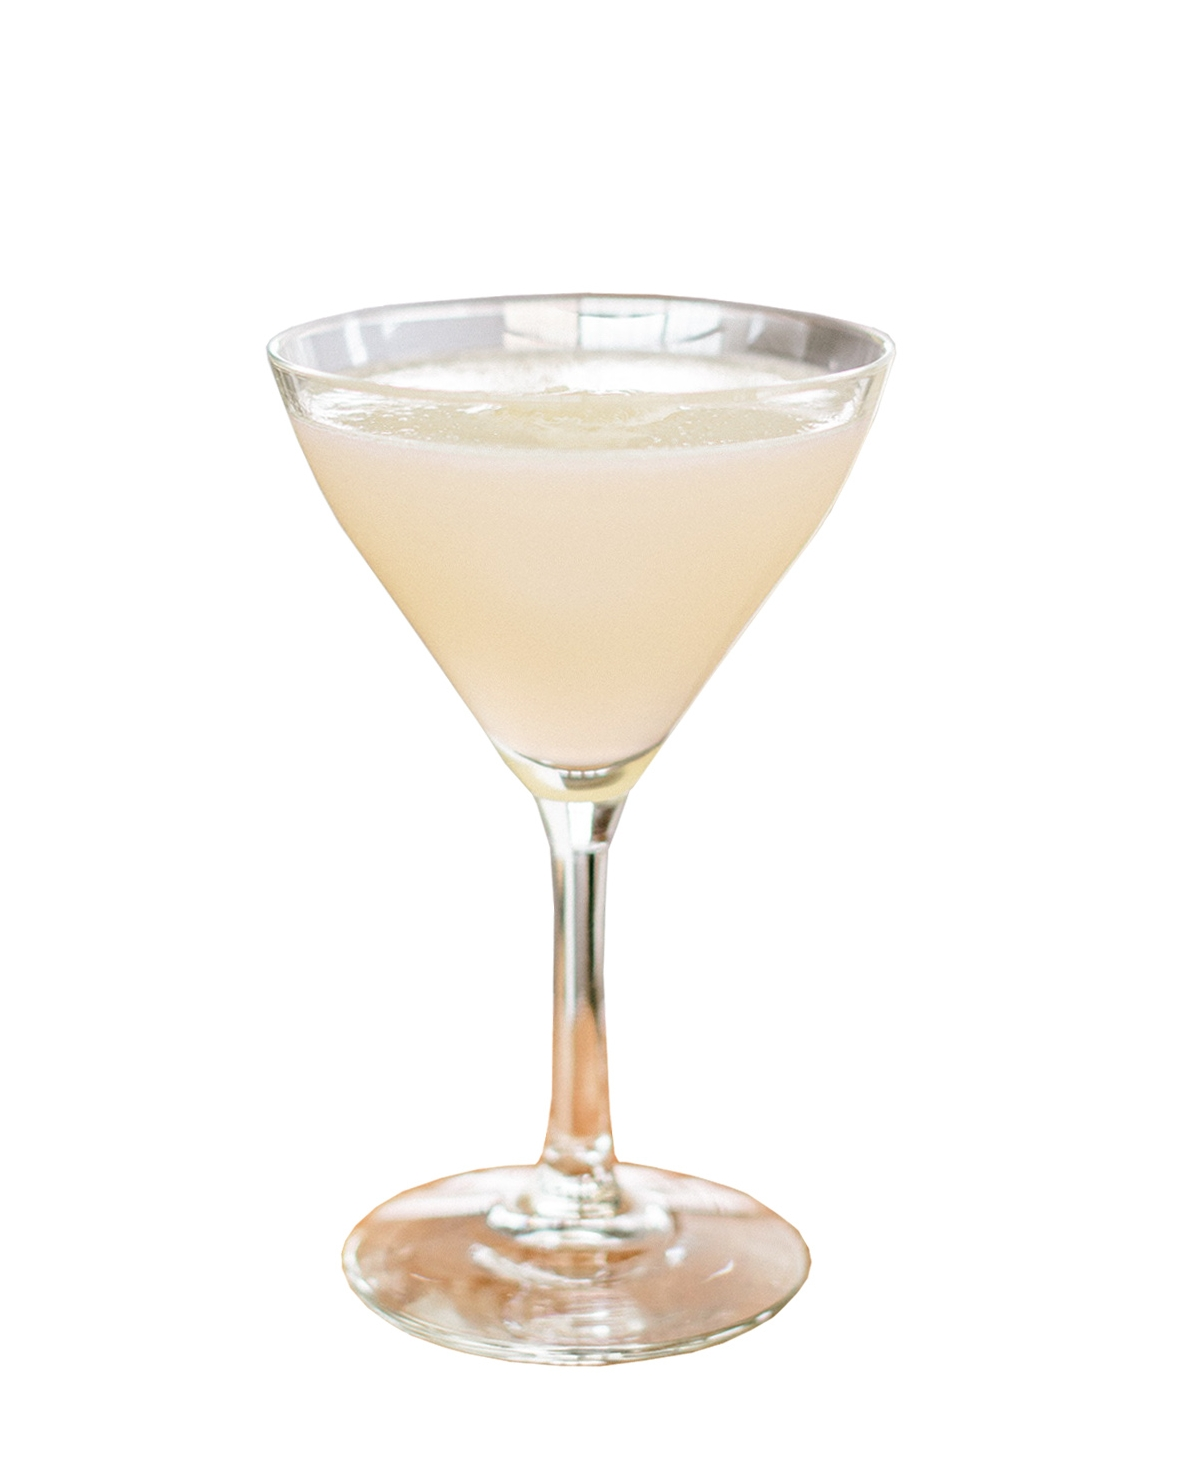 NACIONAL  25ml Norseman Apricot Liqueur 25ml Fresh Lime Juice 55ml Norseman Rum  Shake and strain into a cocktail glass. Float one large ice cube on top.